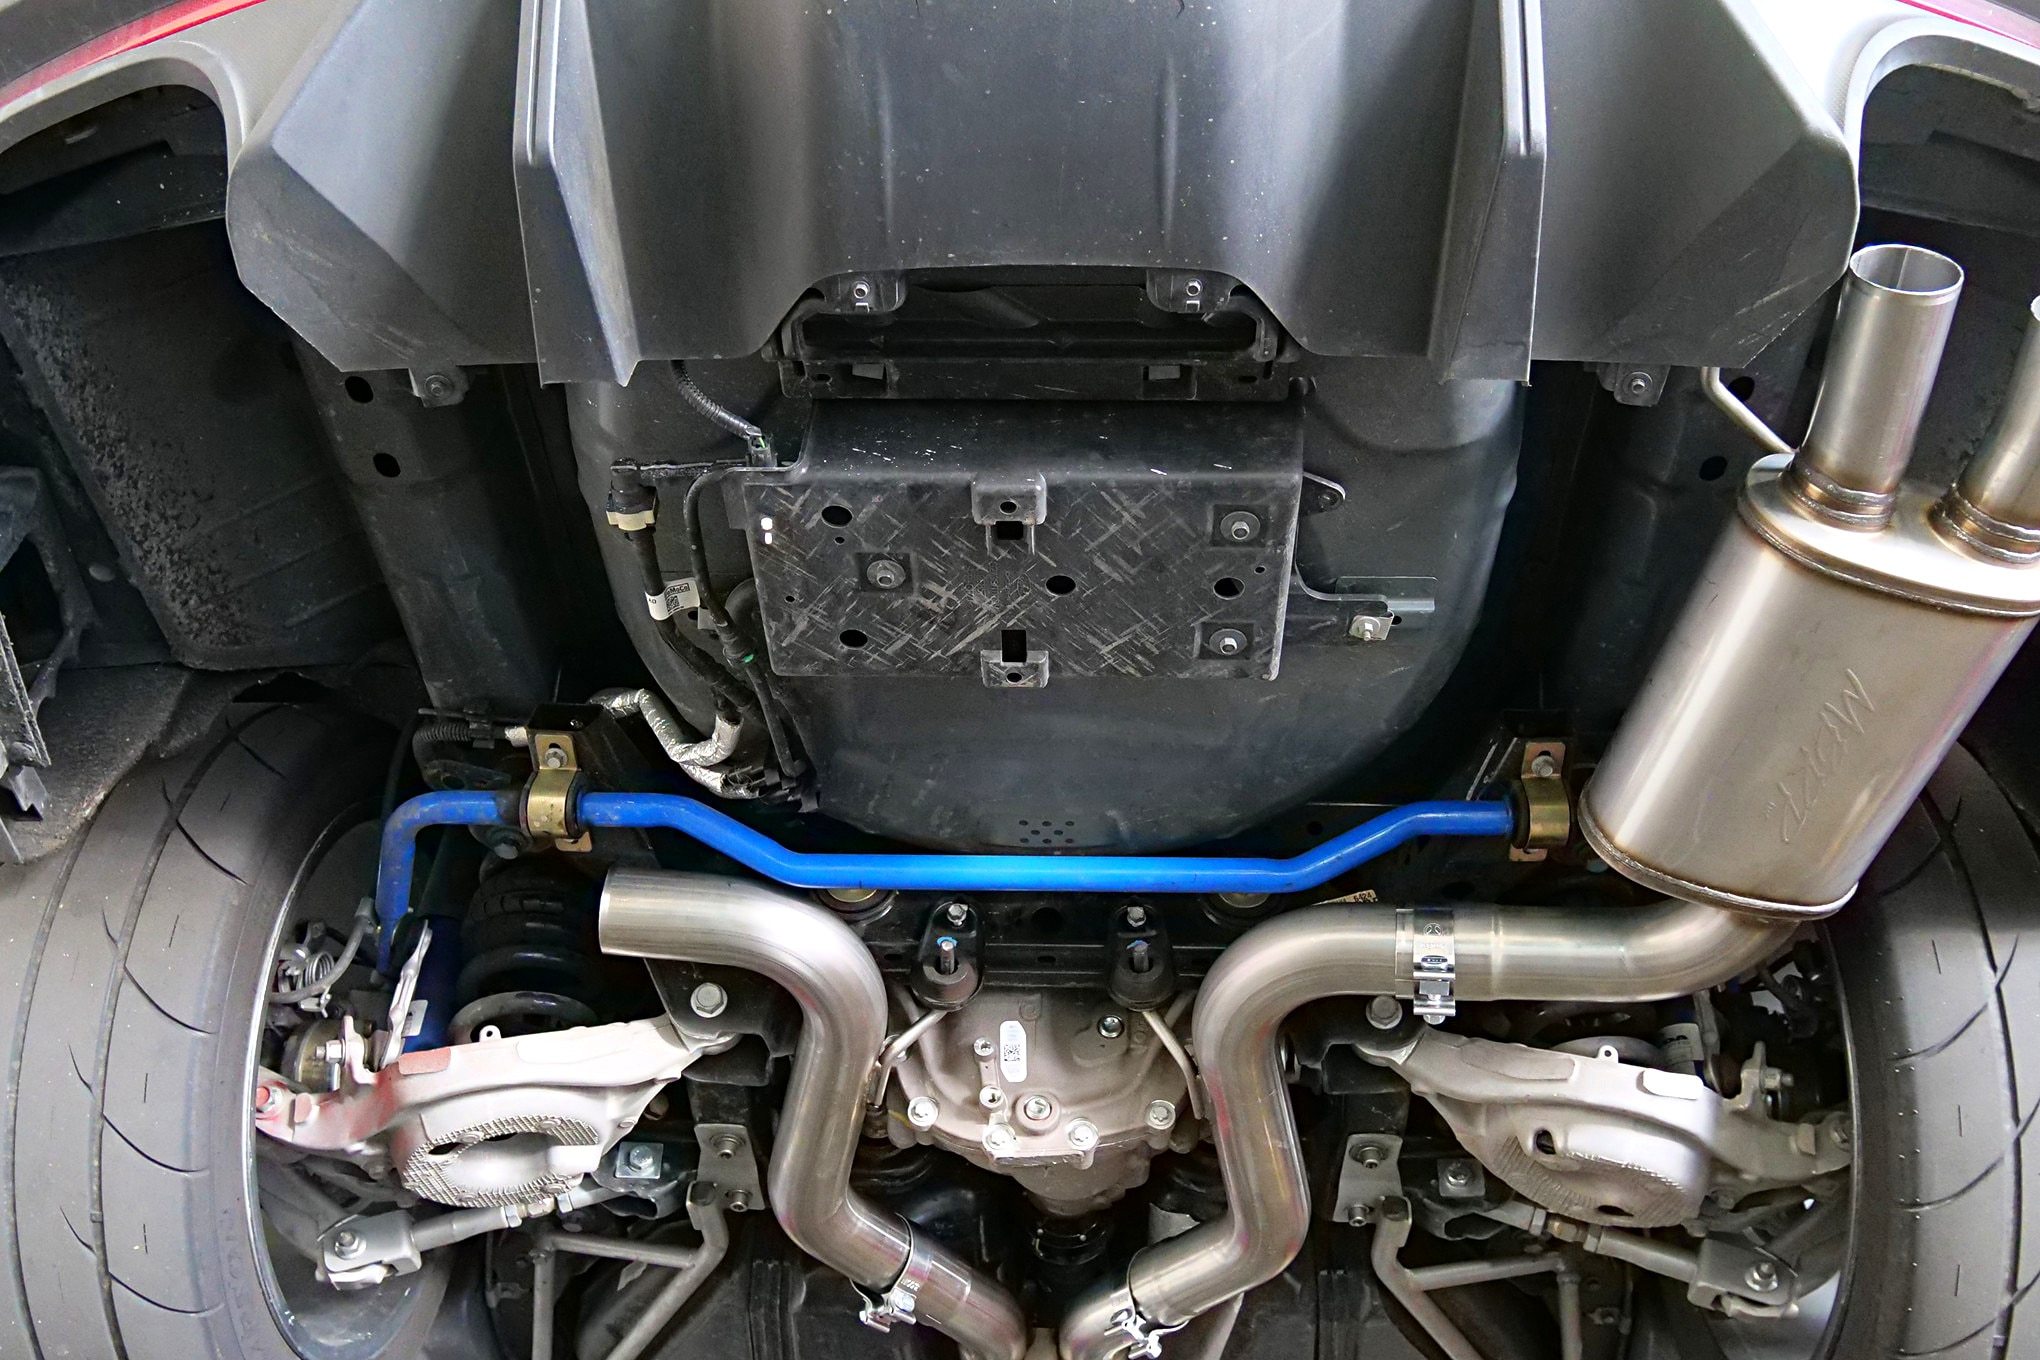 021 Mustang Mbrp Headers Exhaust